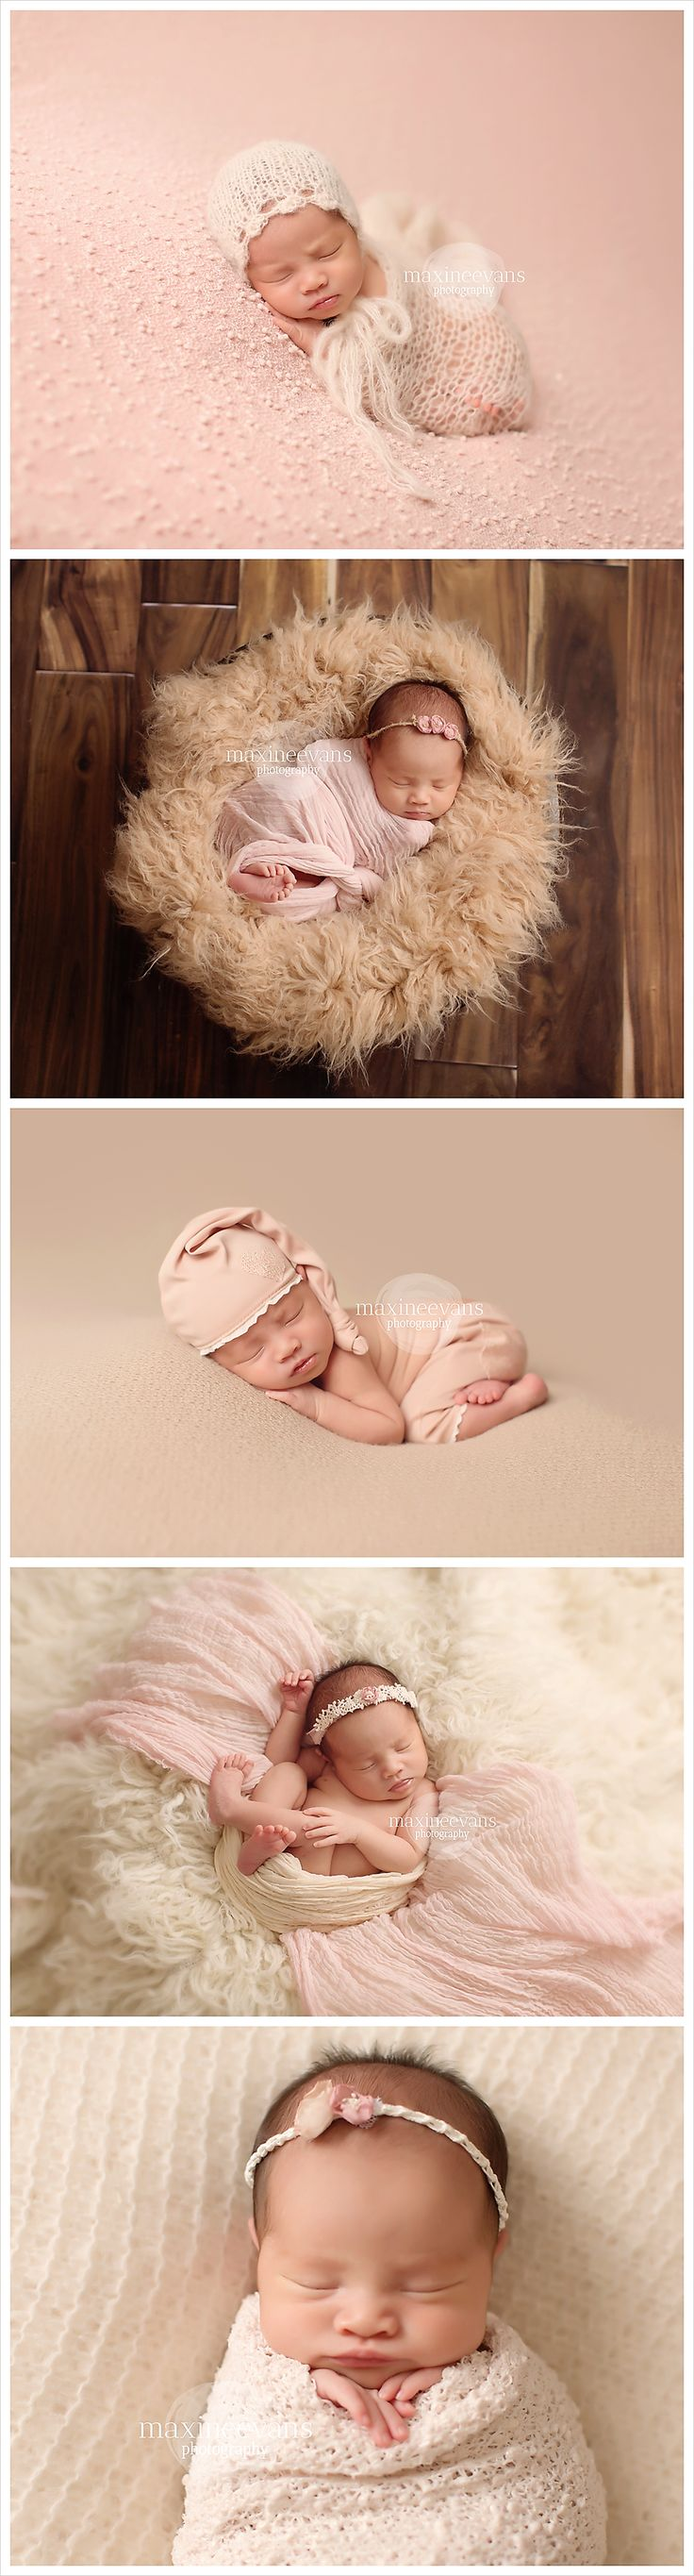 Newborn Photographer - Maxine Evans Photography Los Angeles | Thousand Oaks | Woodland Hills | West LA | Agoura Hills www.maxineevansphotography.com  #losangelesnewbornbaby #losangelesnewborn #losangelesnewbornphotographer